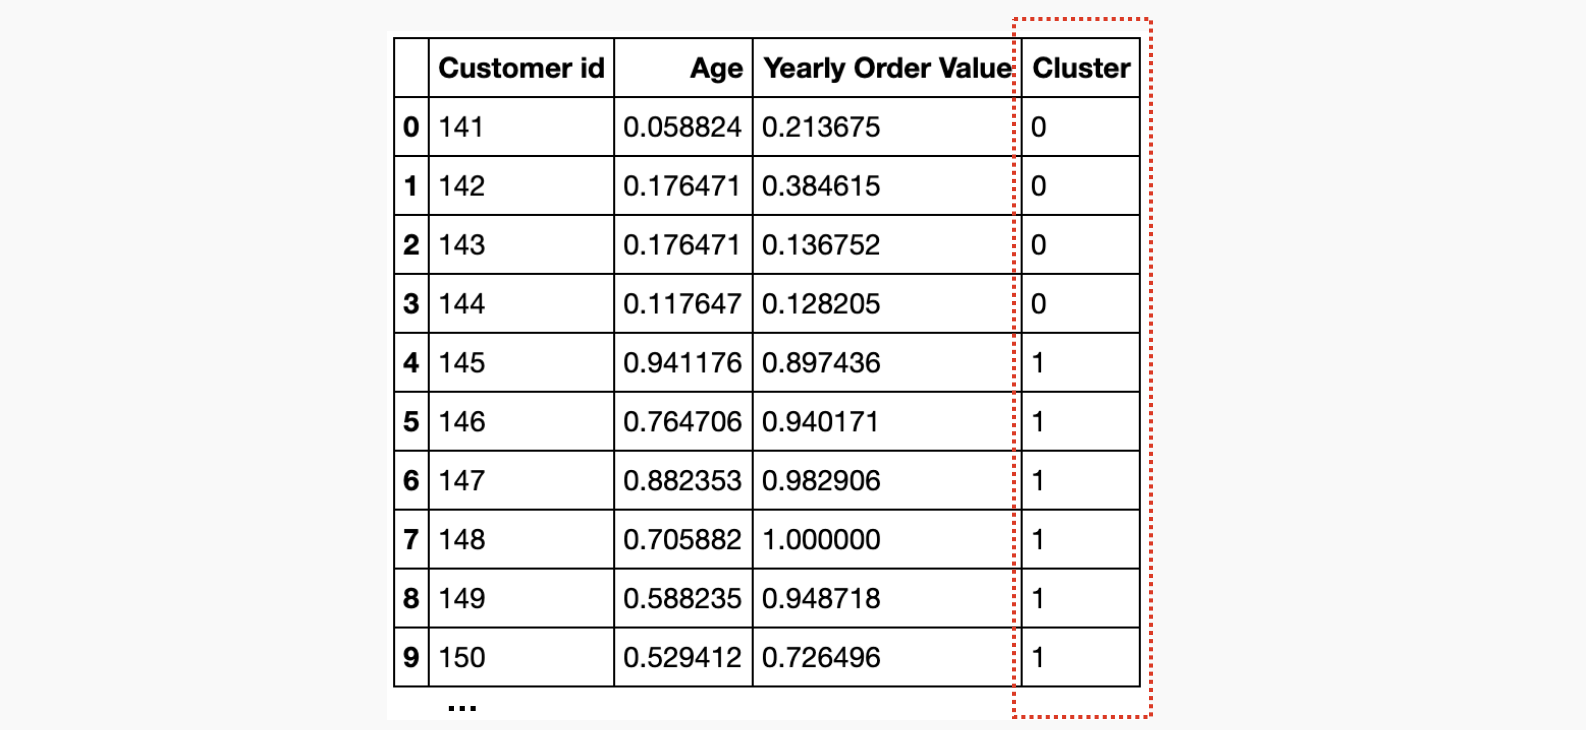 Clustered customer table